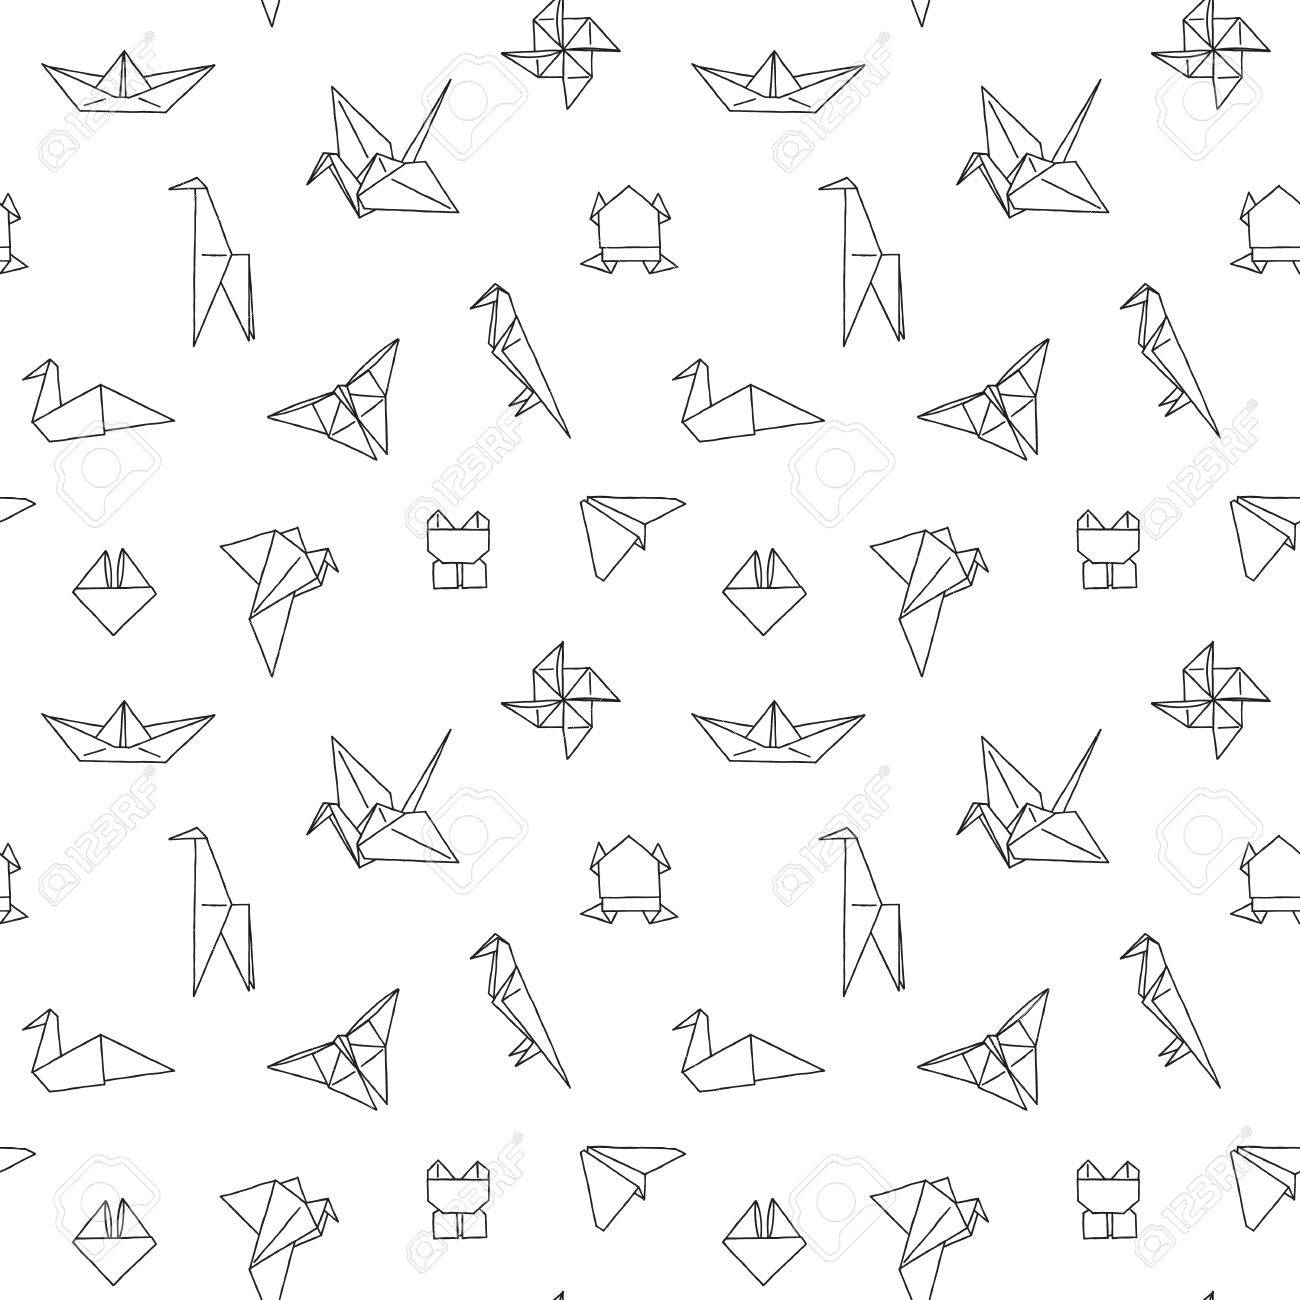 Black And White Cute Kids Seamless Pattern Repetitive Texture With Hand Drawn Origami Animals